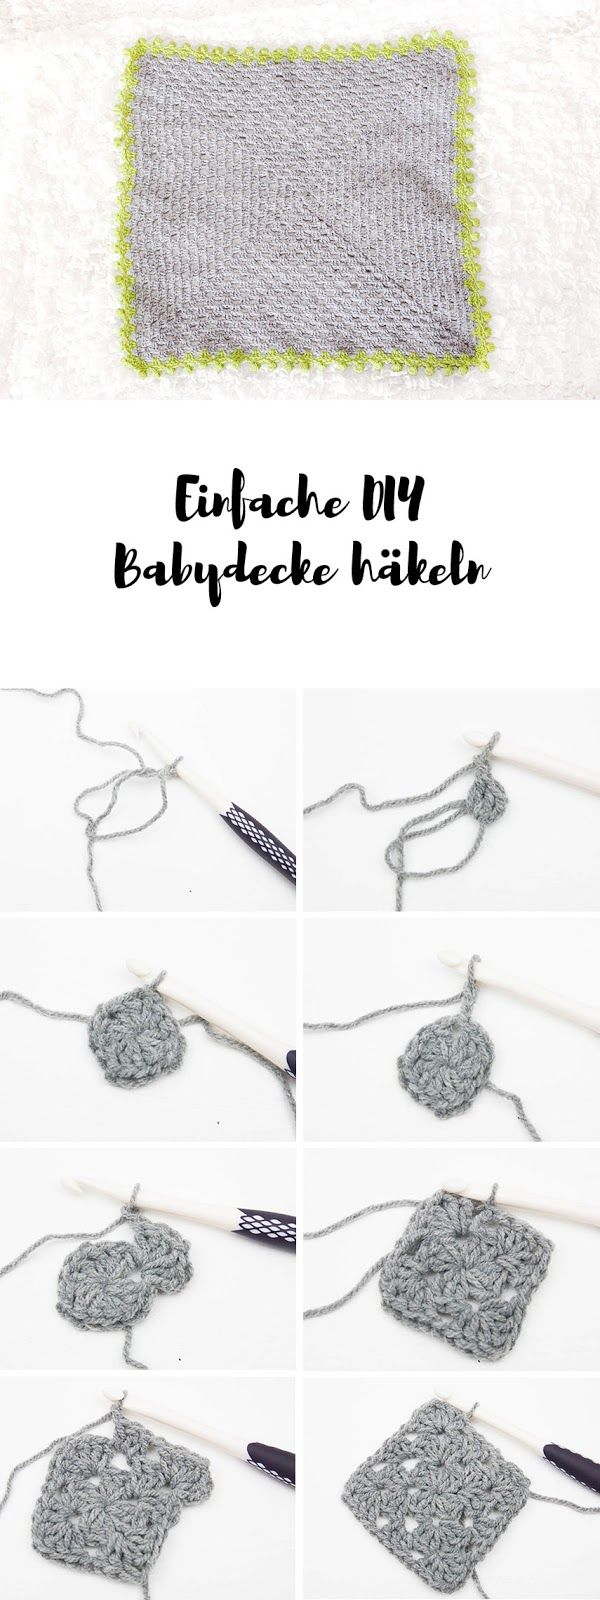 52 best Häkeln und Stricken images on Pinterest | Knit crochet ...